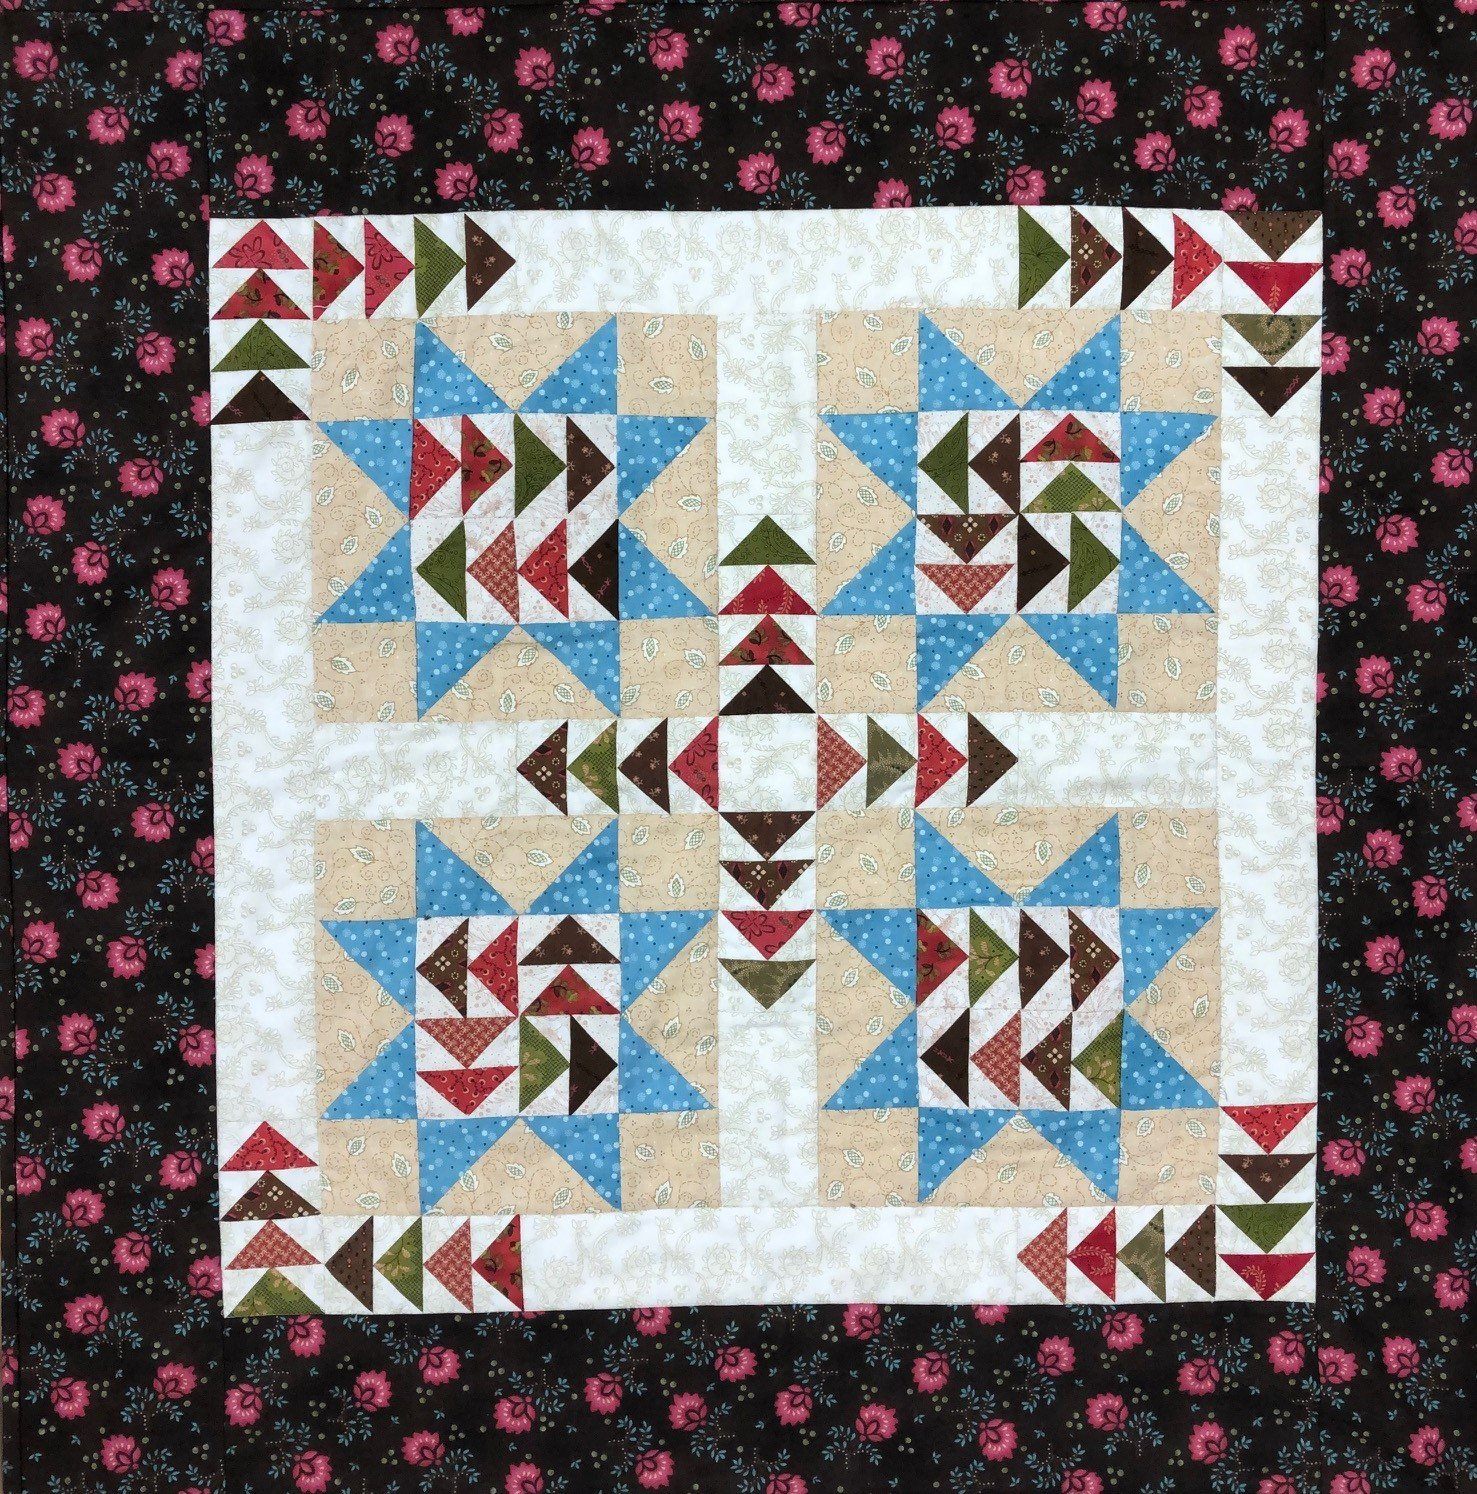 iTTY bITTY gEESE quILT